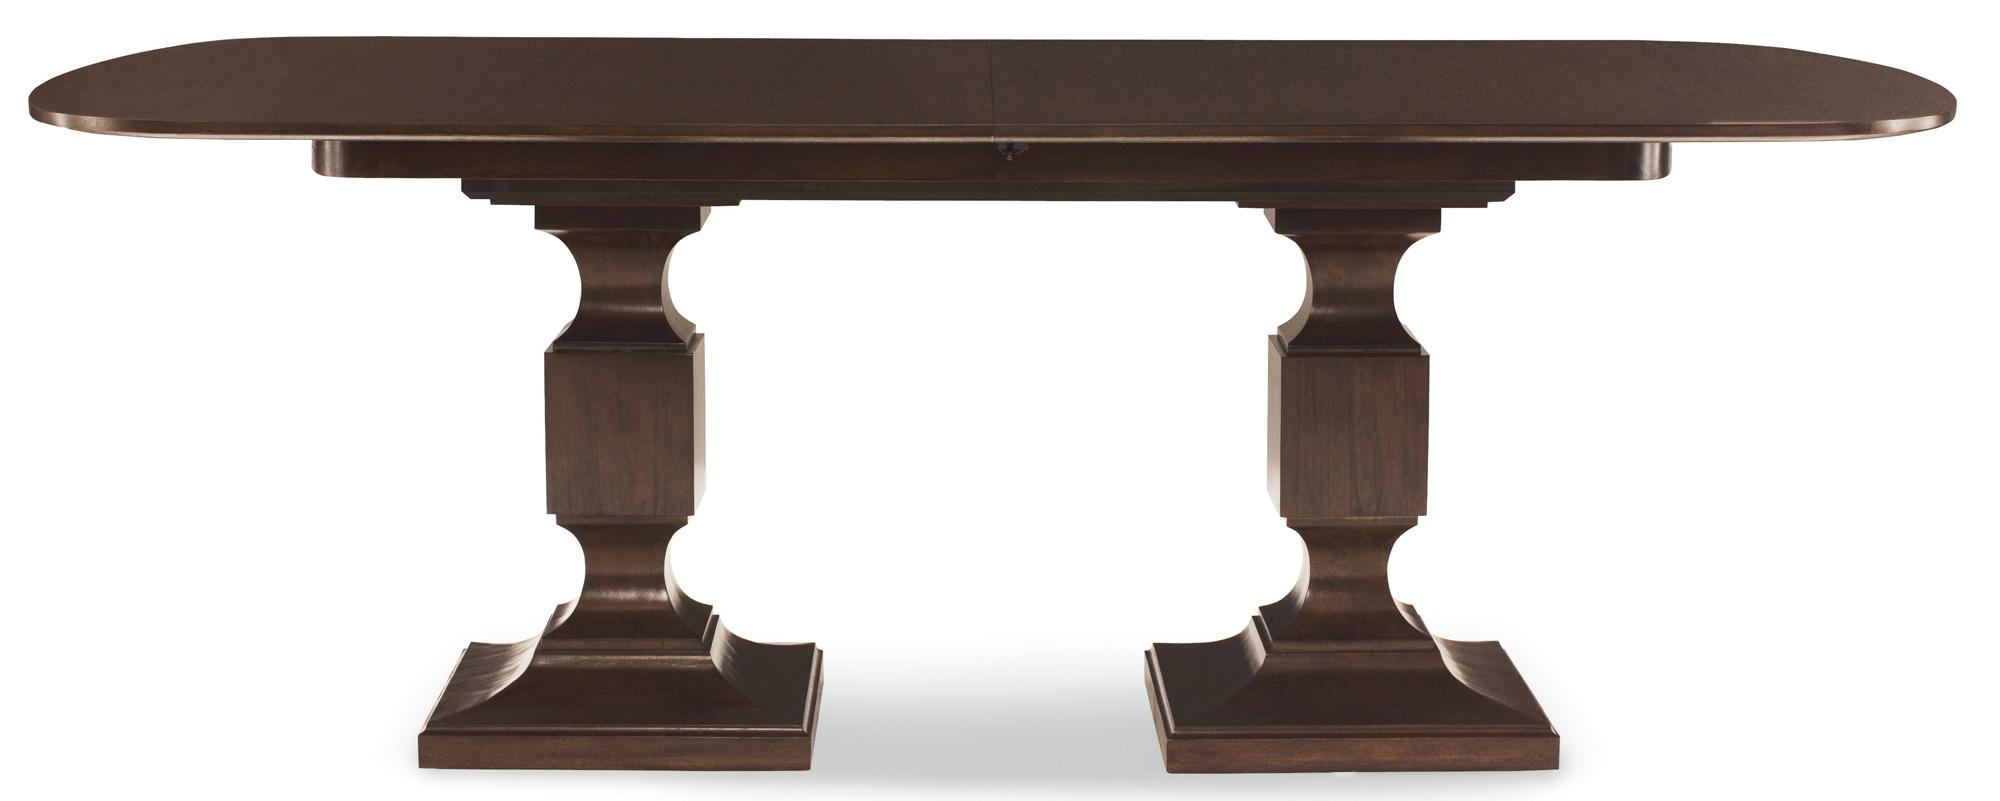 Bernhardt Haven Double Pedestal Dining Table With 2 Leaves